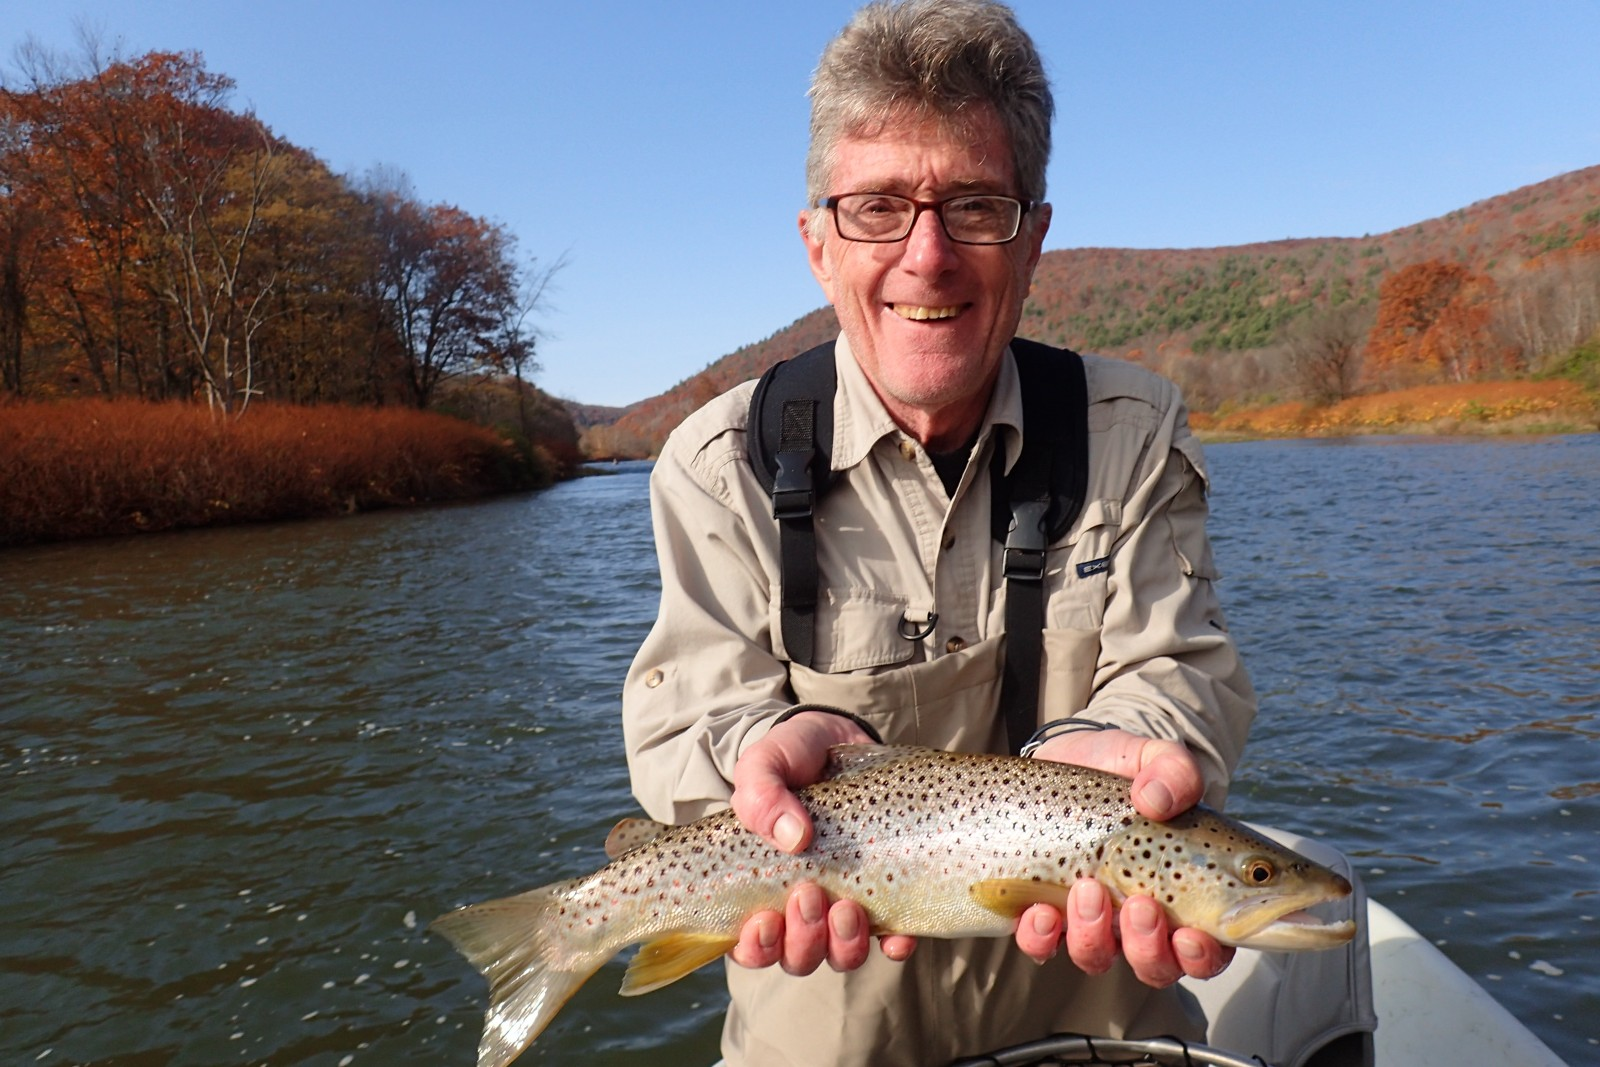 guided fly fishing west branch delaware river new york and pennsylvania pocono mountains jesse filingo